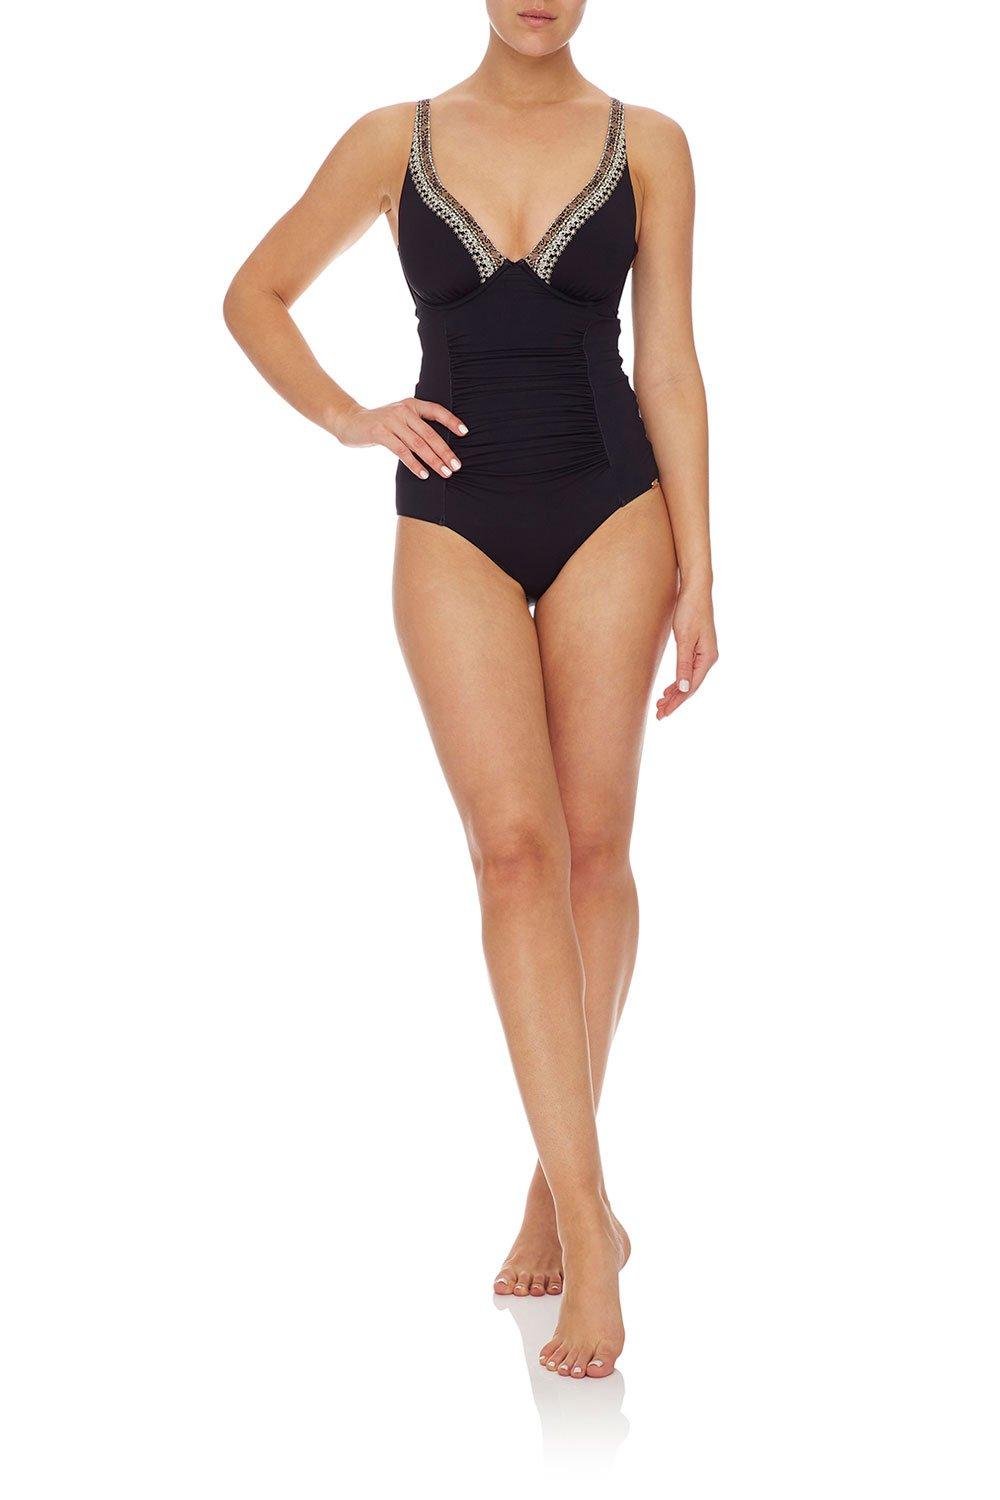 CAMILLA E CUP UNDERWIRE ONE PIECE BLACK